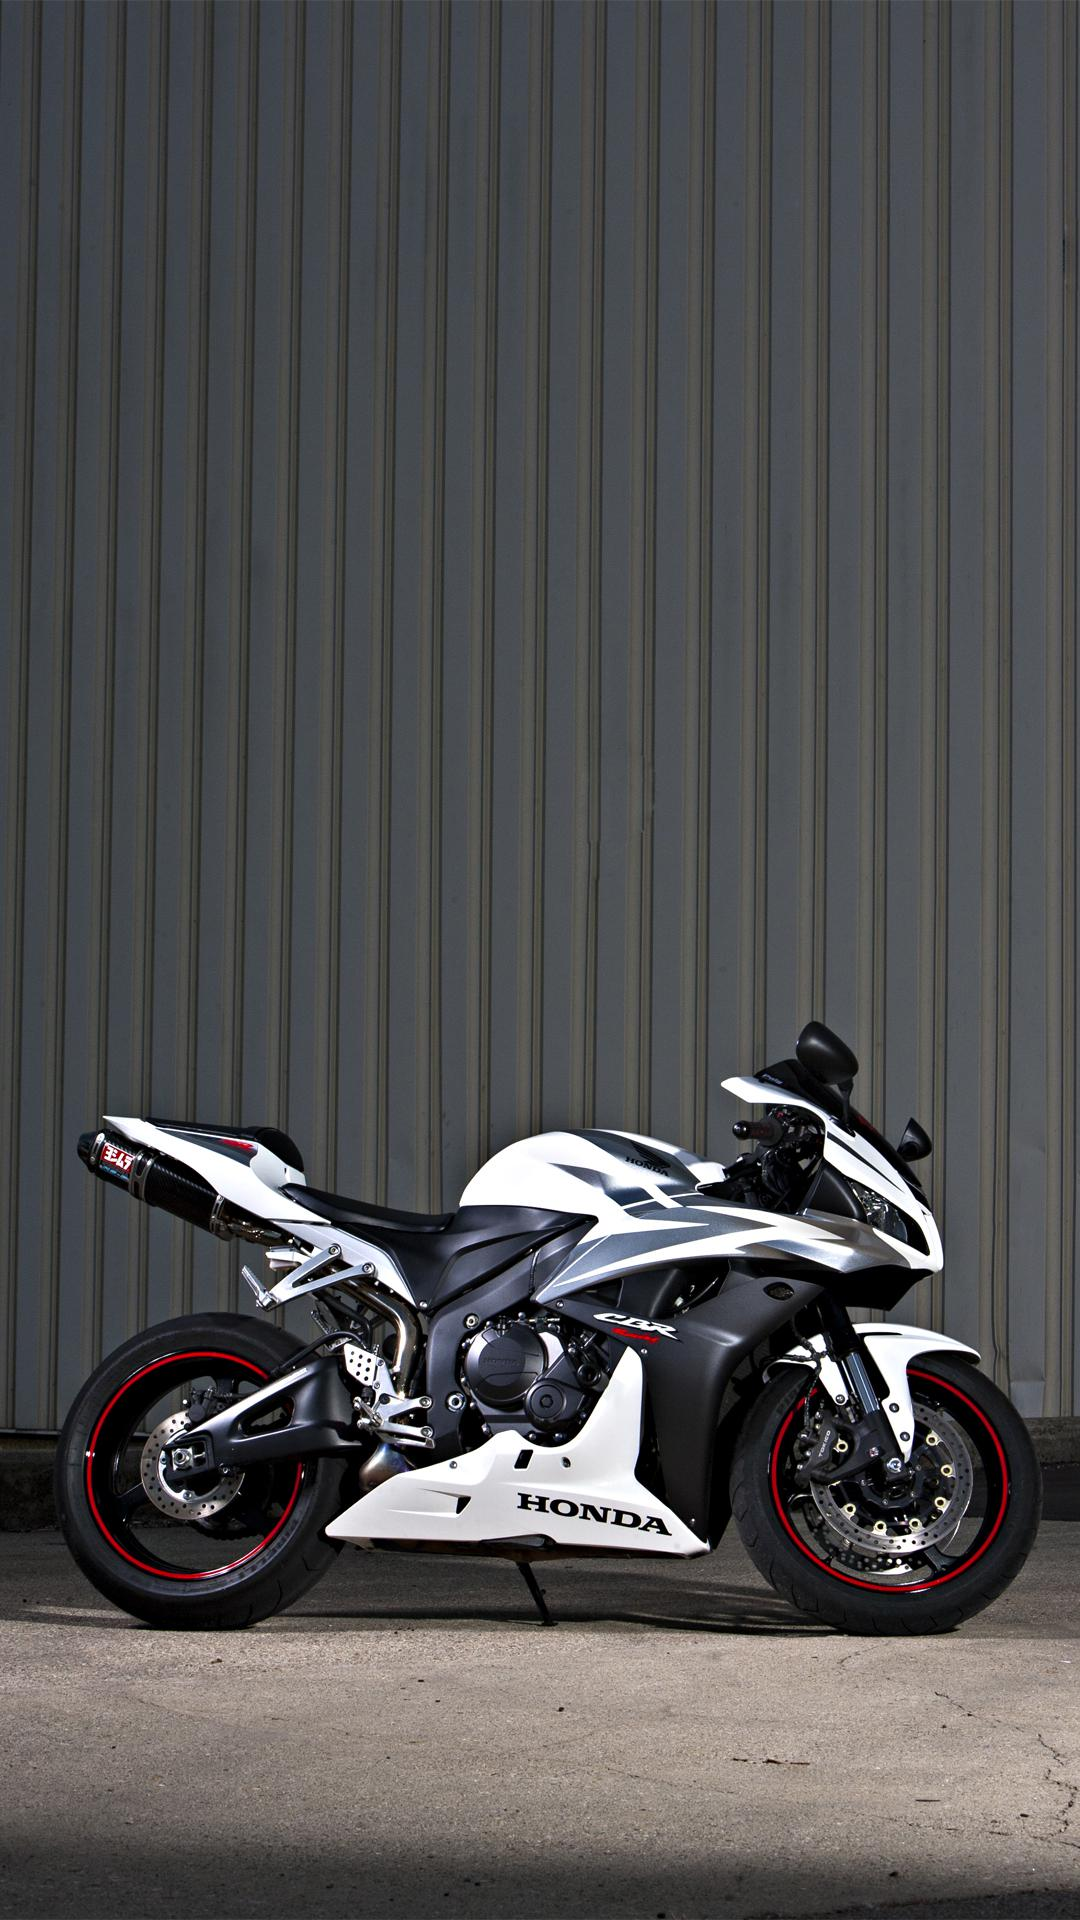 Honda CBR motorcycle x iPhone SCSE